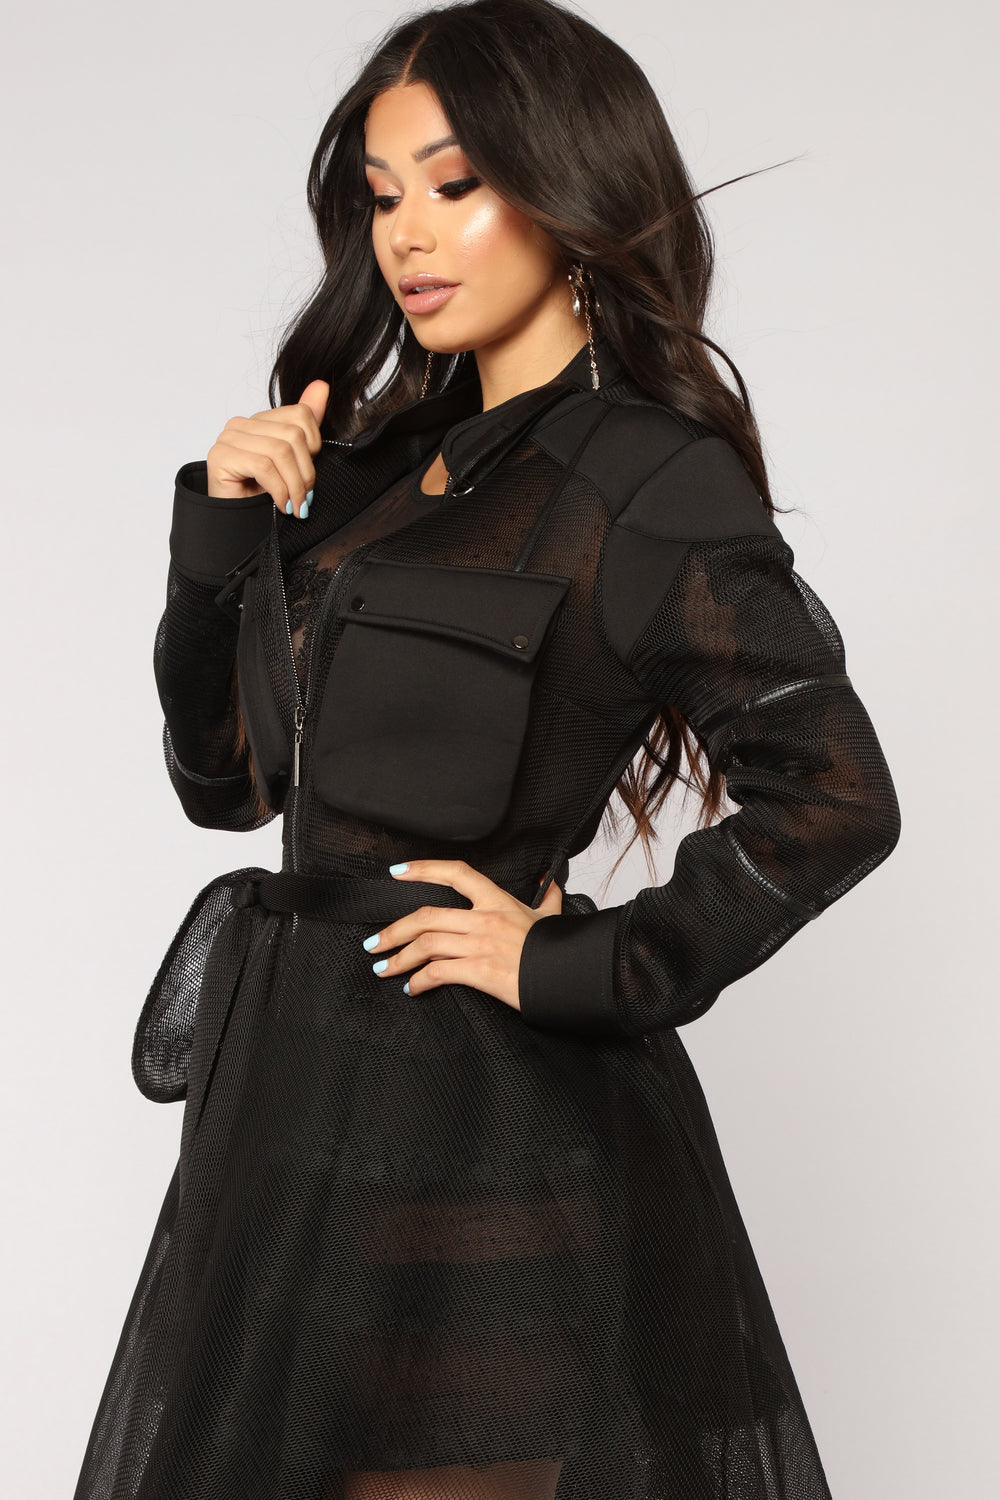 Beyond Fishnet Jacket - Black